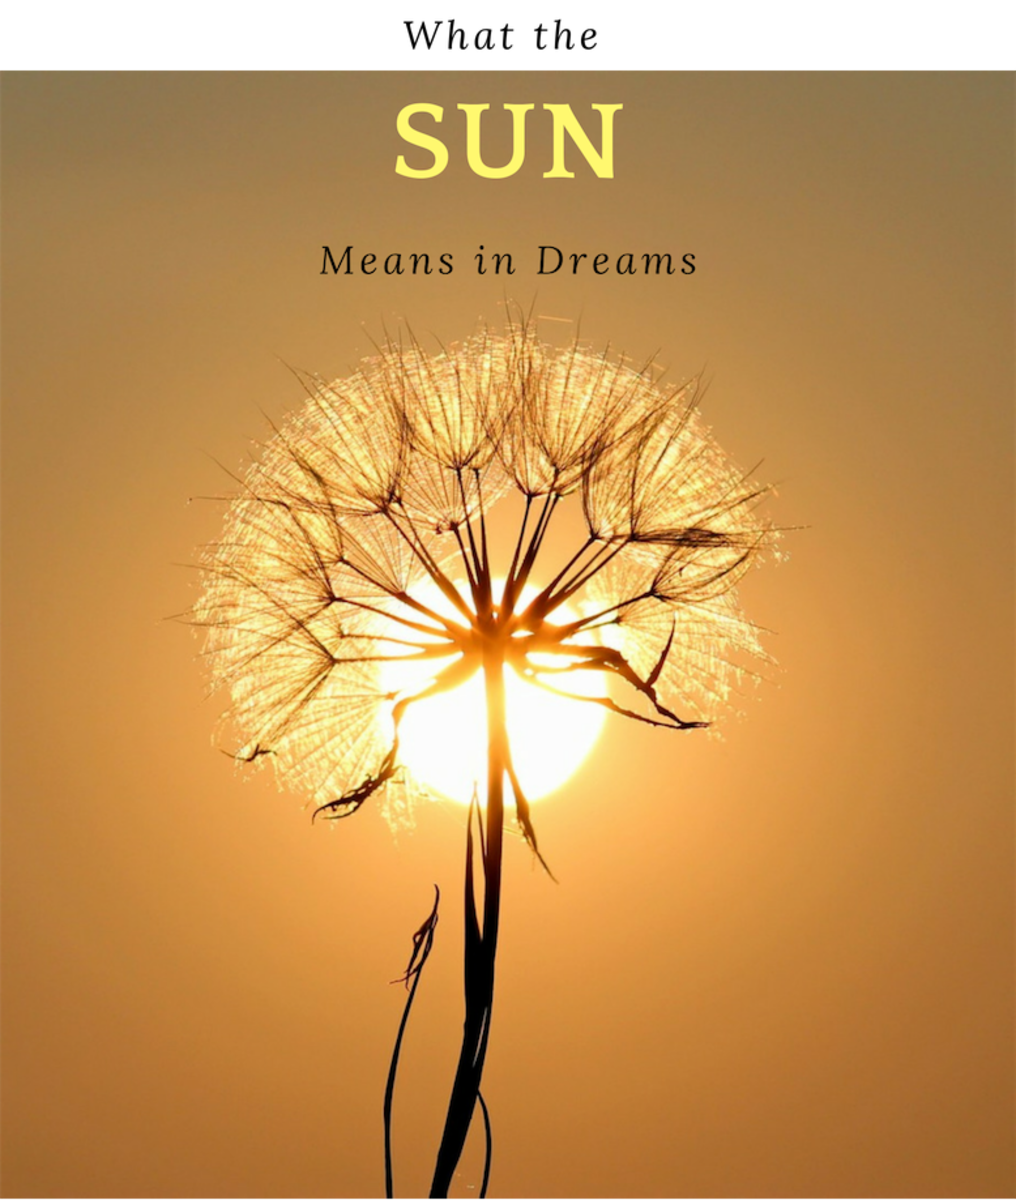 How to Interpret the Sun as a Dream Symbol